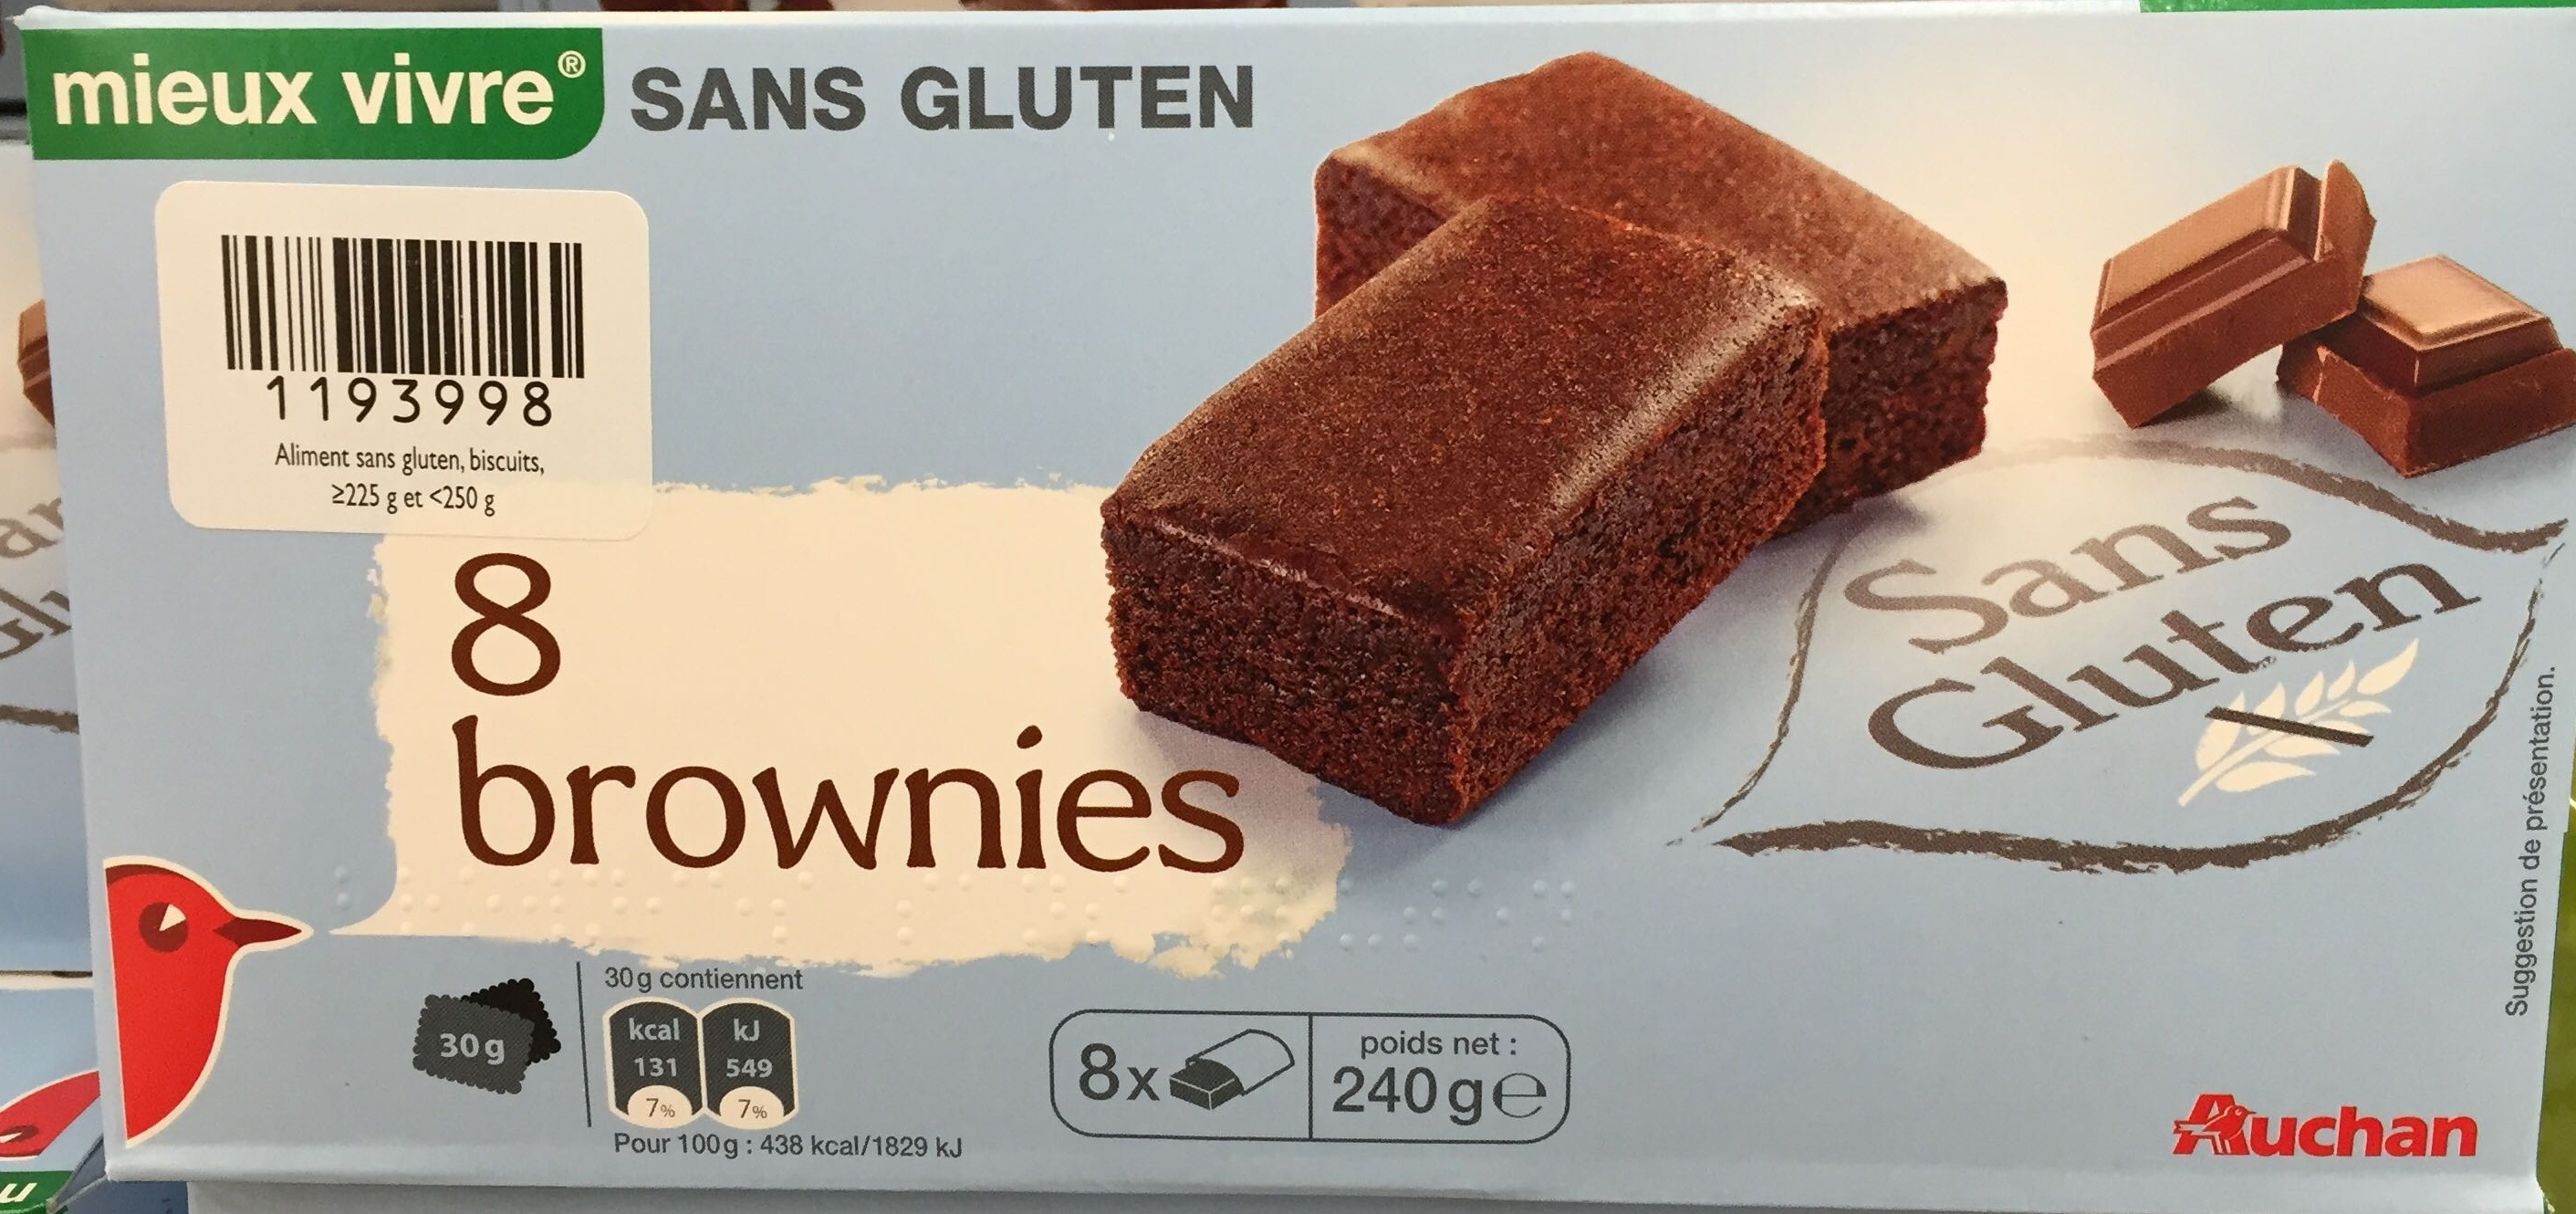 8 brownies - Product